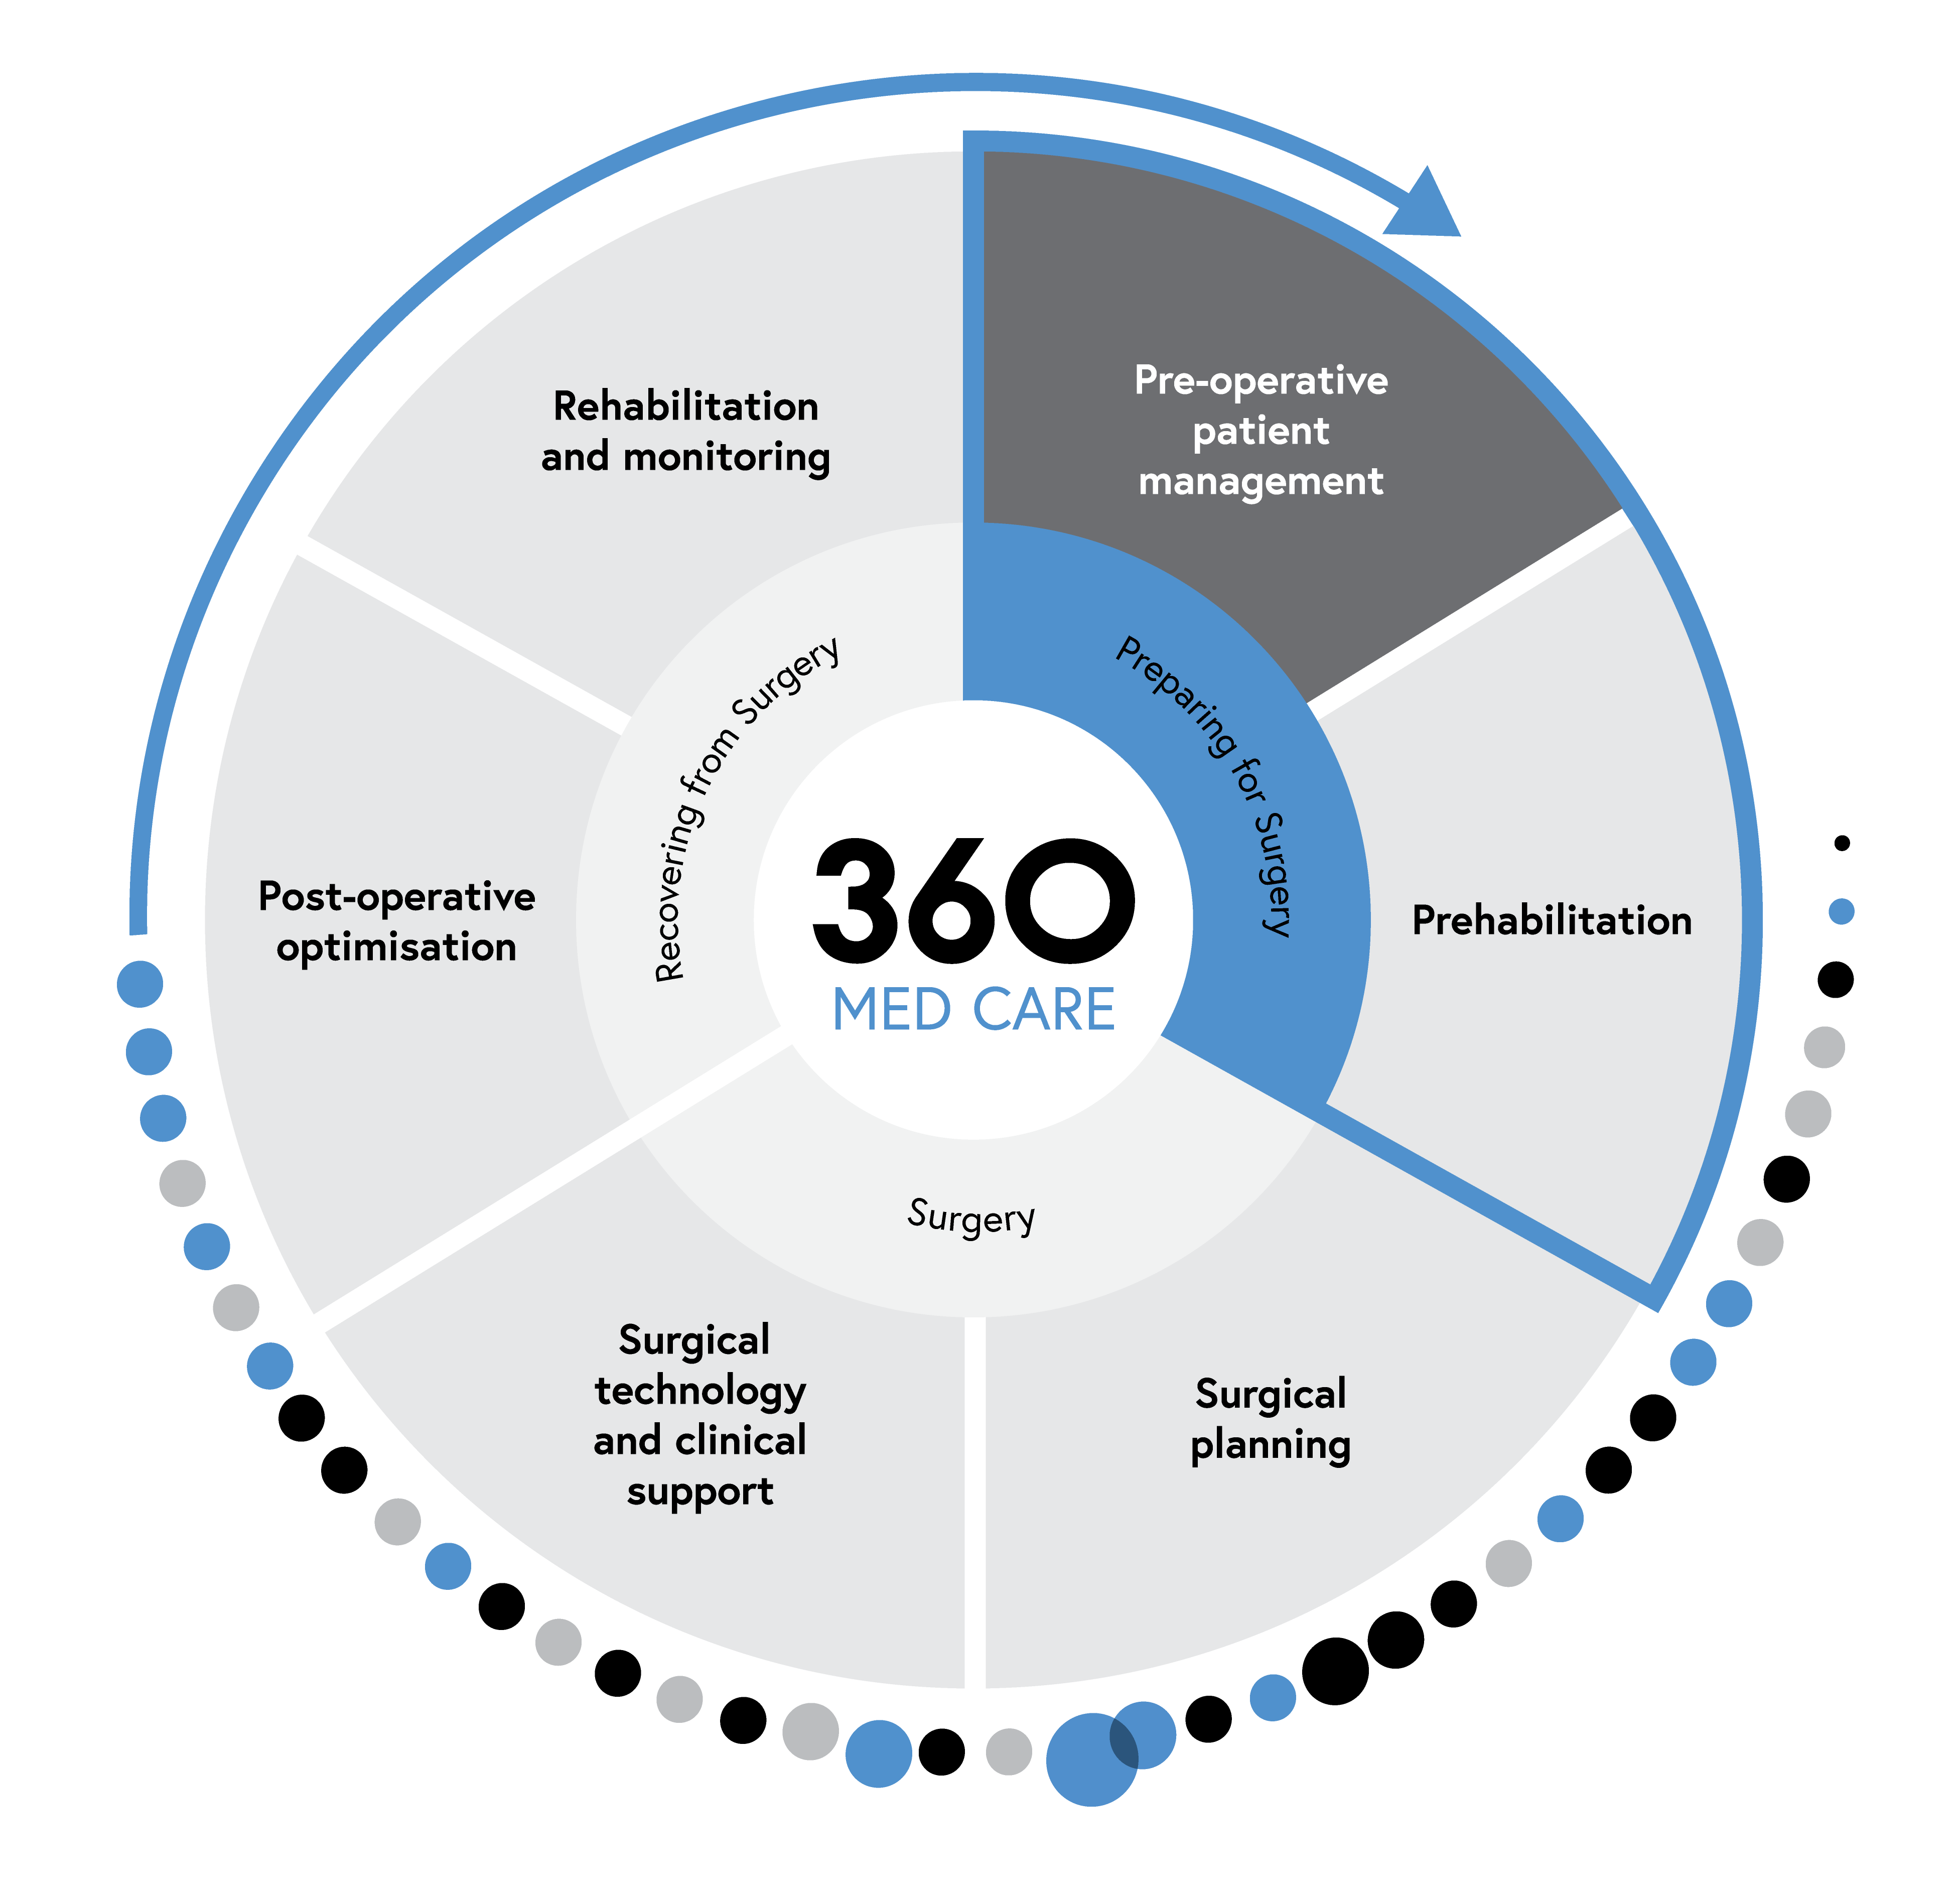 360 Med Care company wheel - Pre-operative patient management